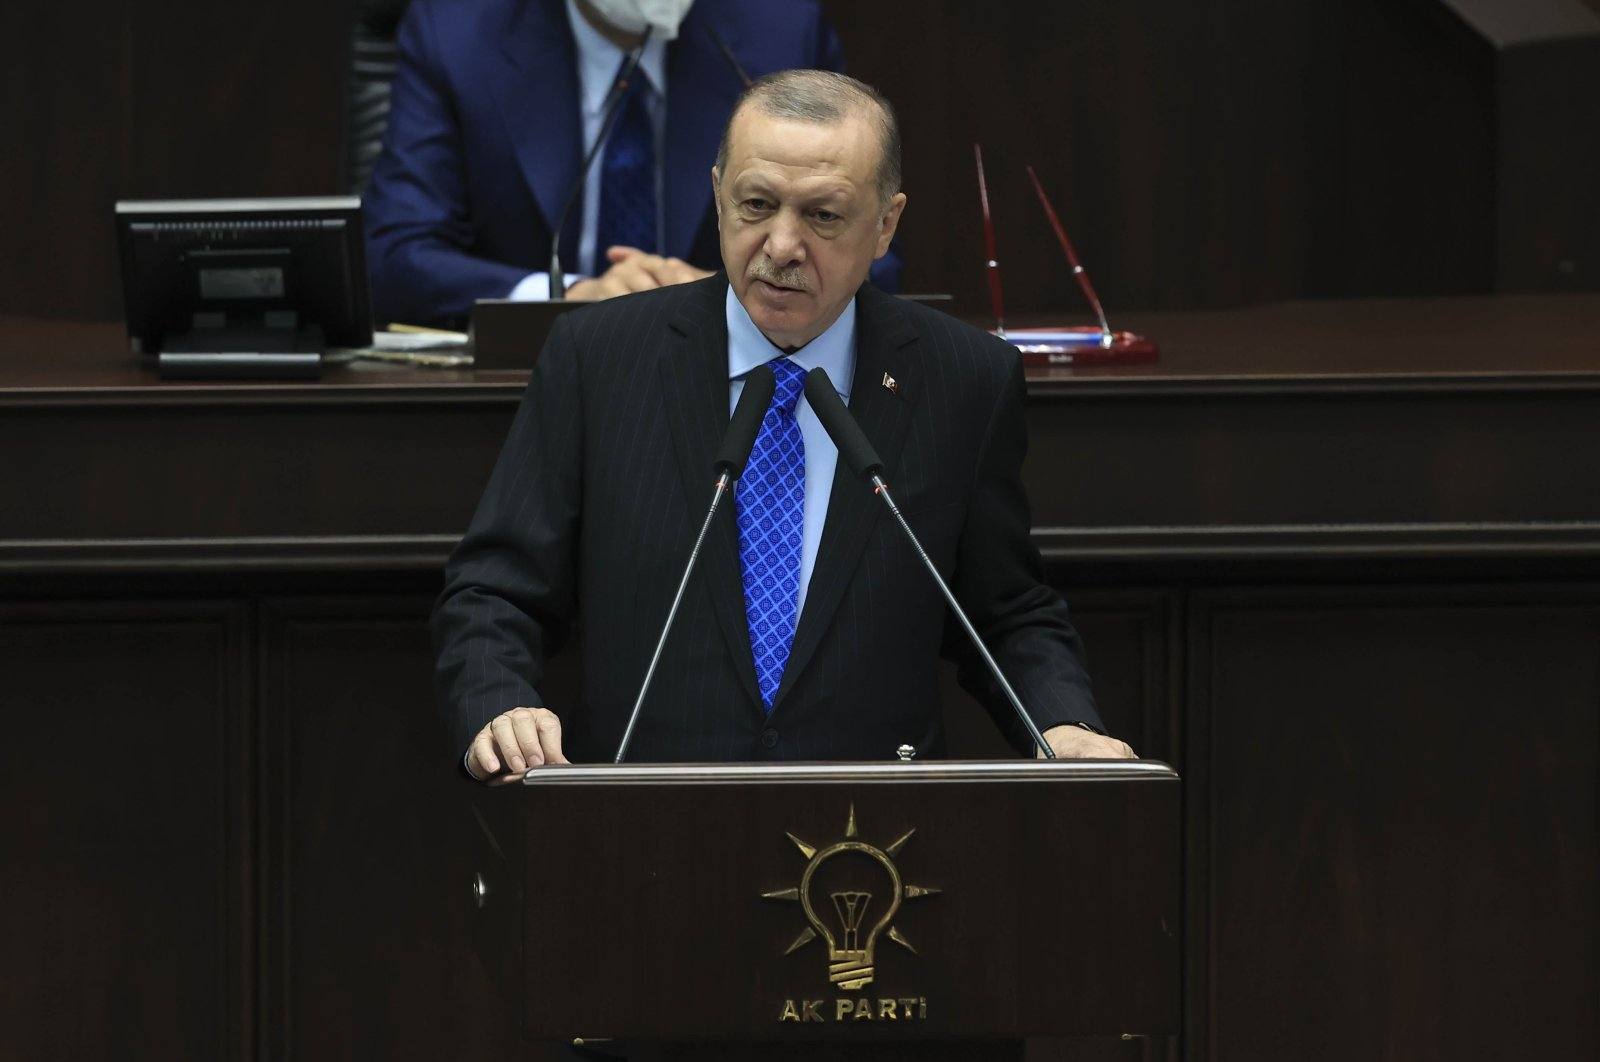 President Recep Tayyip Erdoğan speaks at the ruling Justice and Development Party's (AK Party) parliamentary group meeting at the Turkish Parliament, Ankara, Turkey, May 26, 2021. (AA Photo)